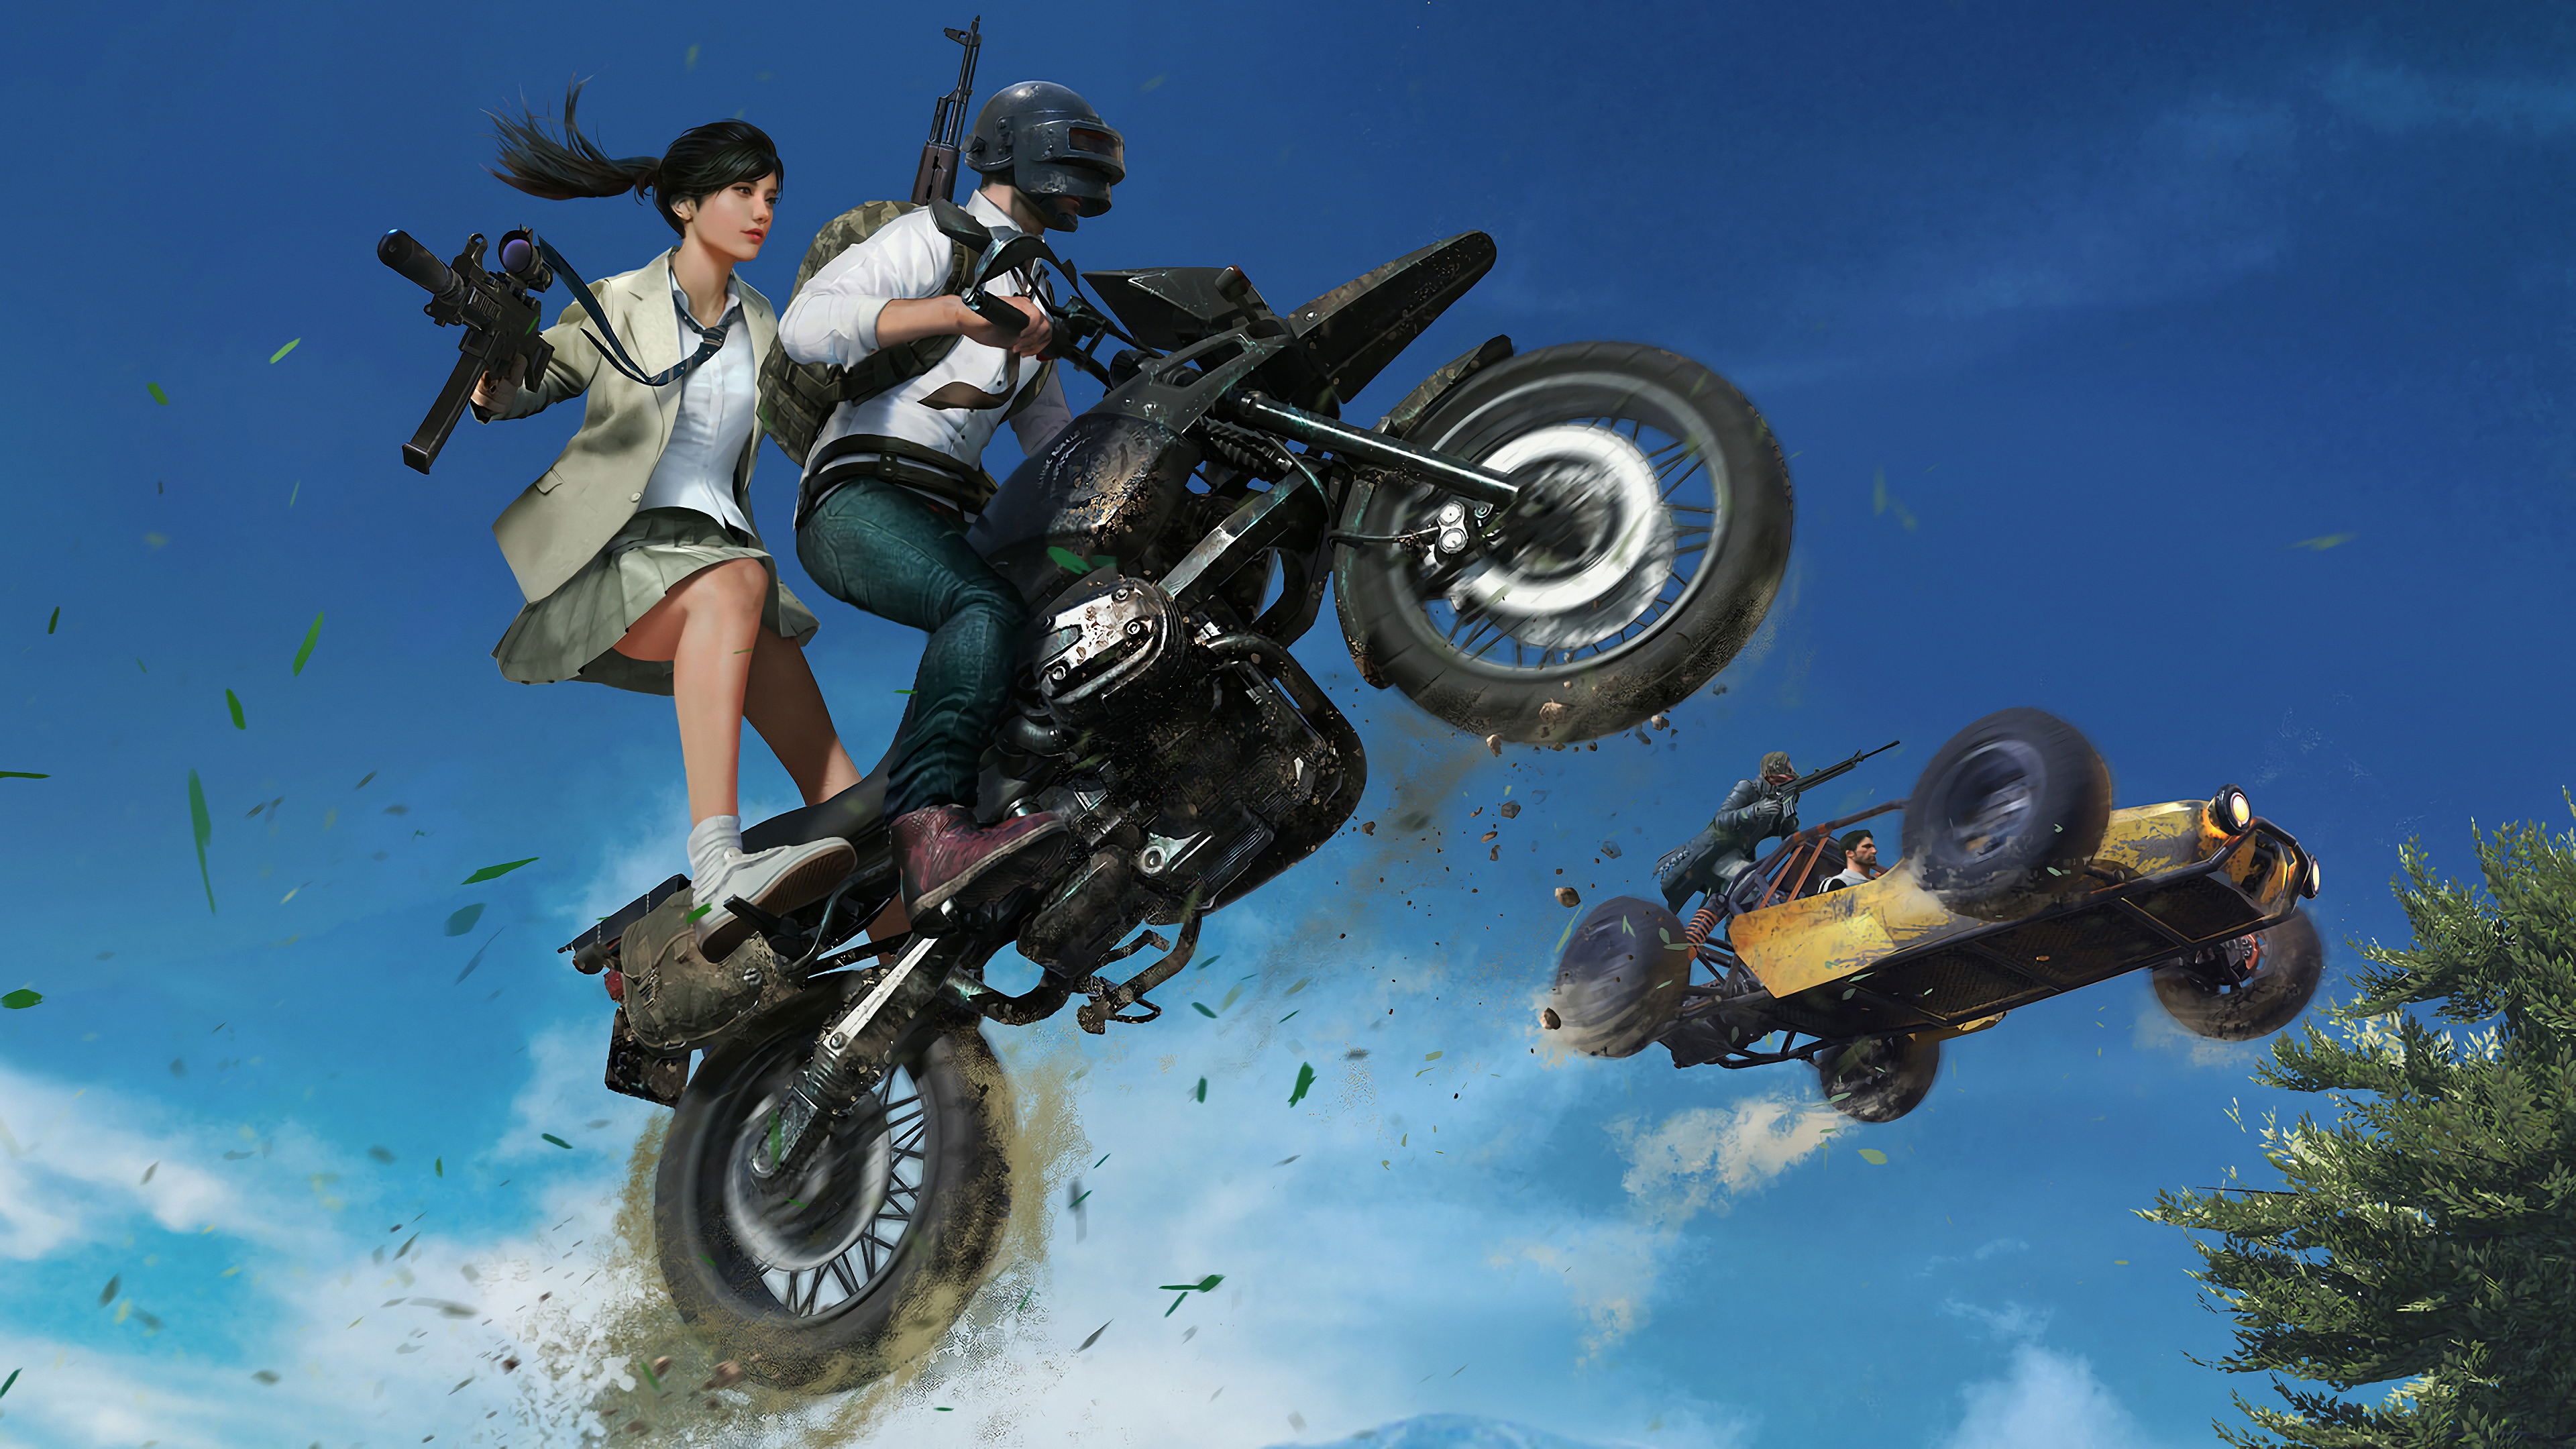 Pubg Wallpaper Phone: Player Unknown's Battlegrounds (PUBG) 4K Bike Girl Pubg